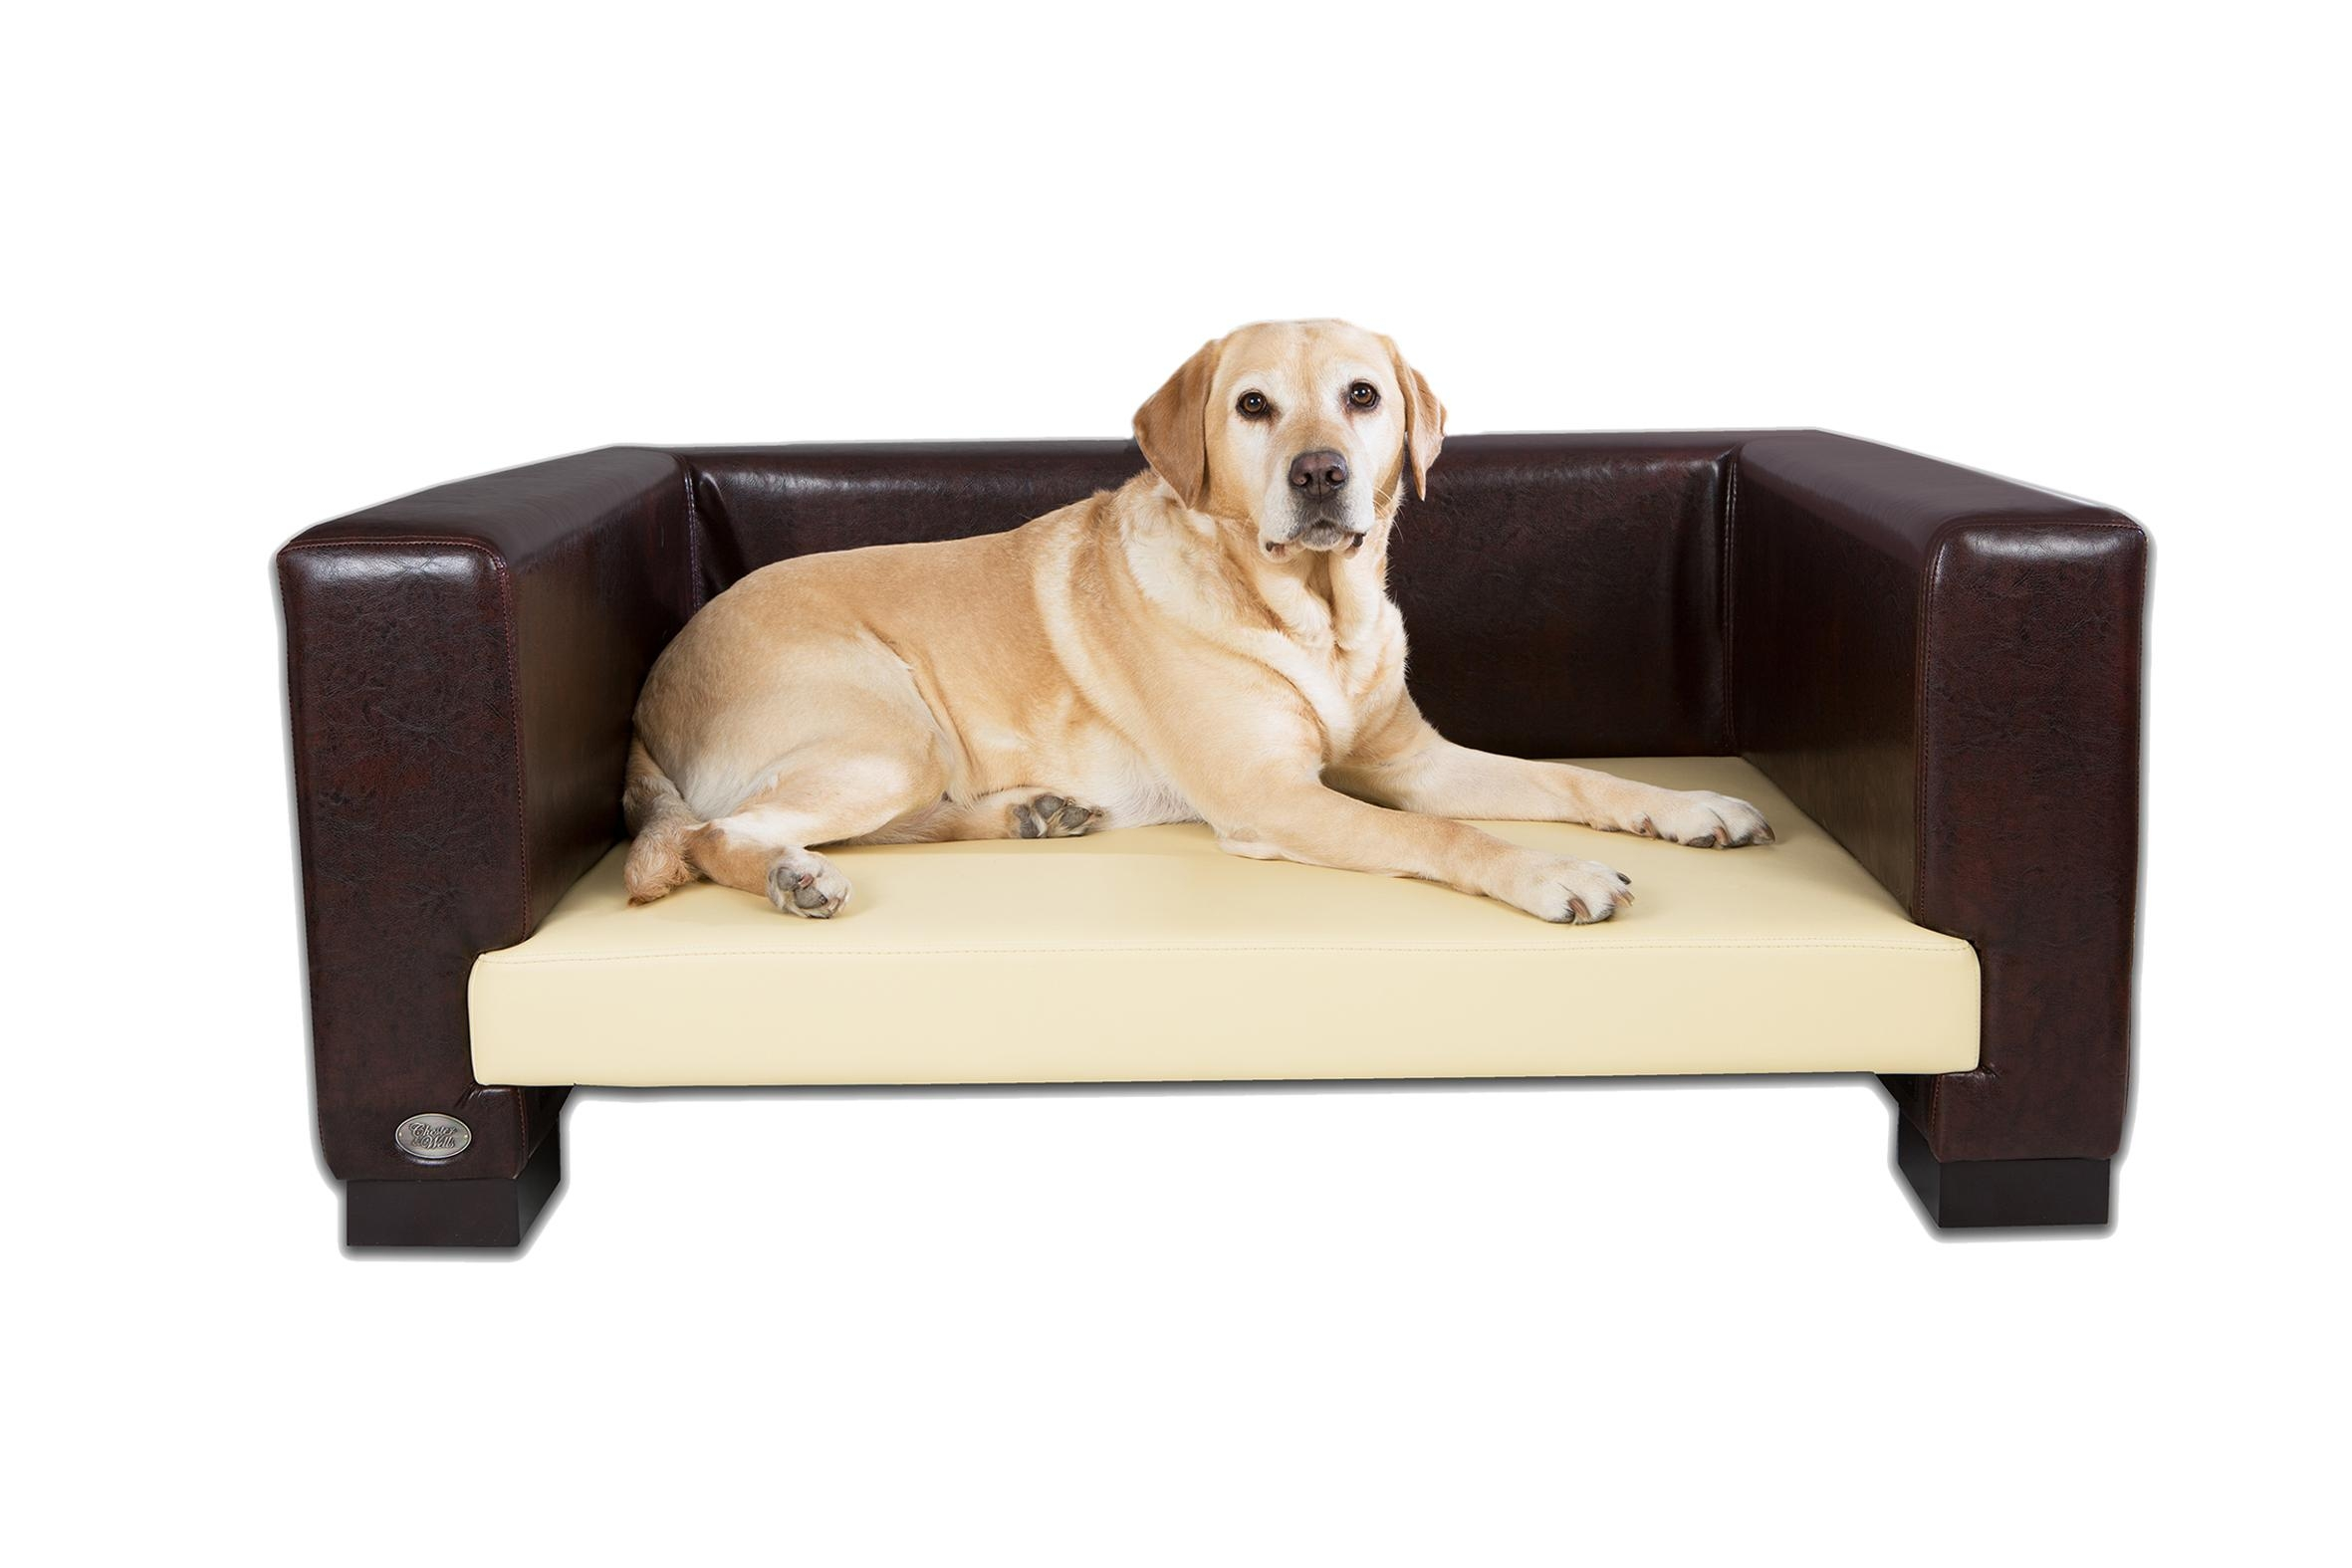 Sofas Center : Stunning Pet Sofa Picture Ideas Dog Luxury Home Within Sofas For Dogs (Image 17 of 20)